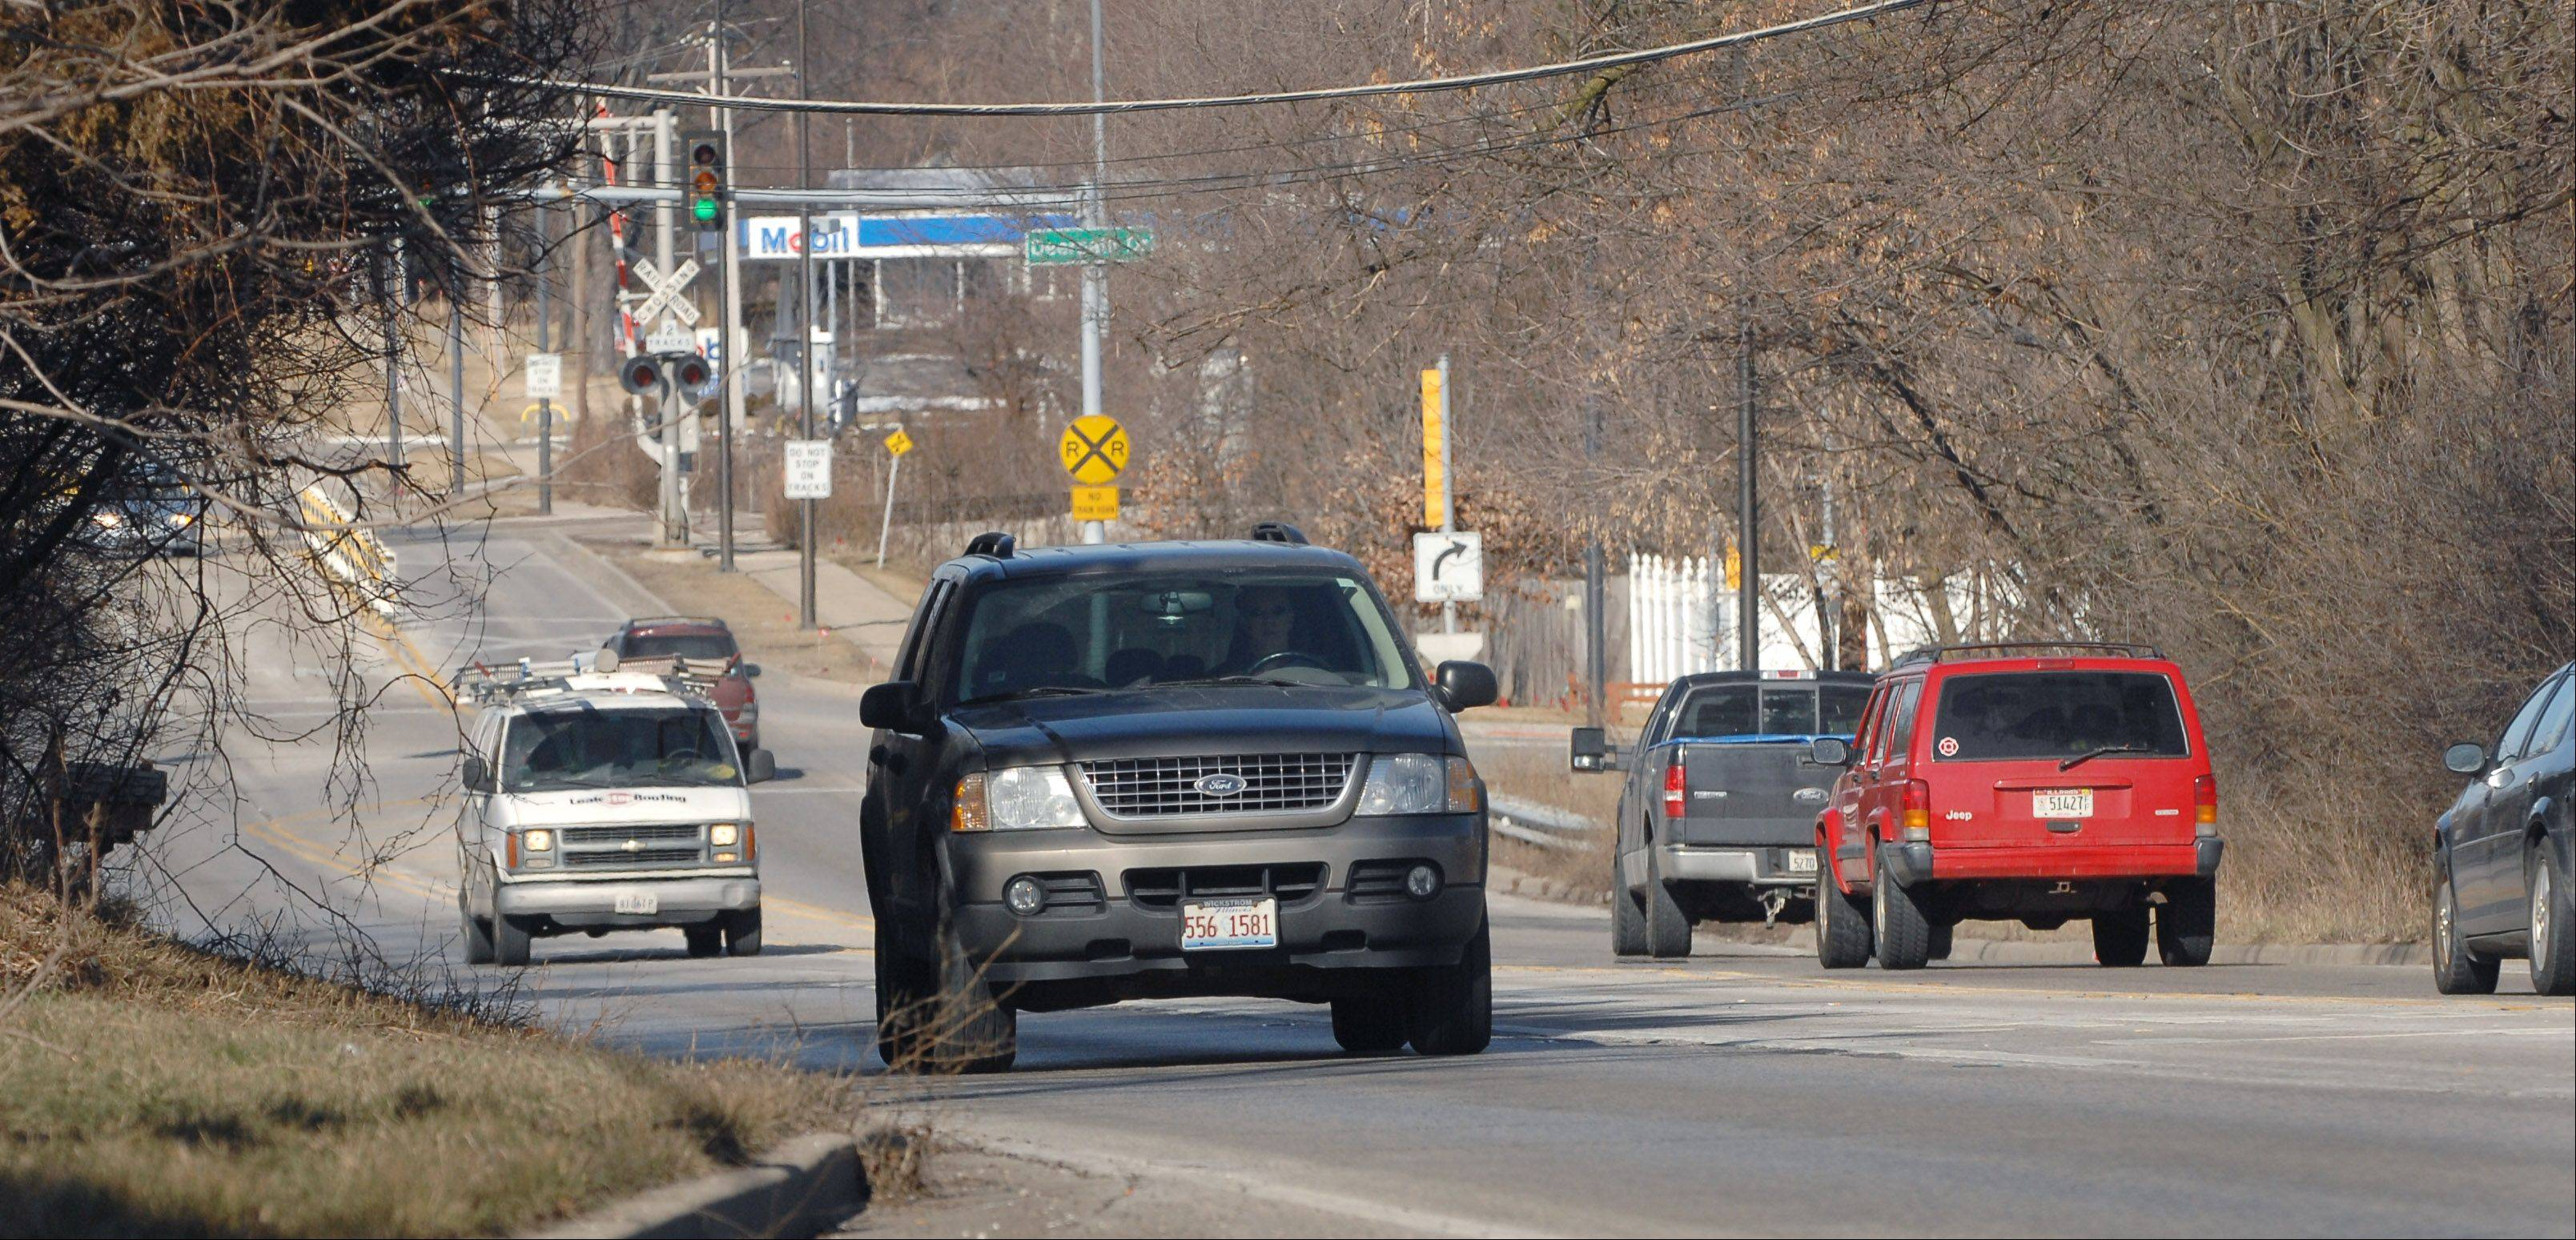 Route 45 design nears approval but construction years away